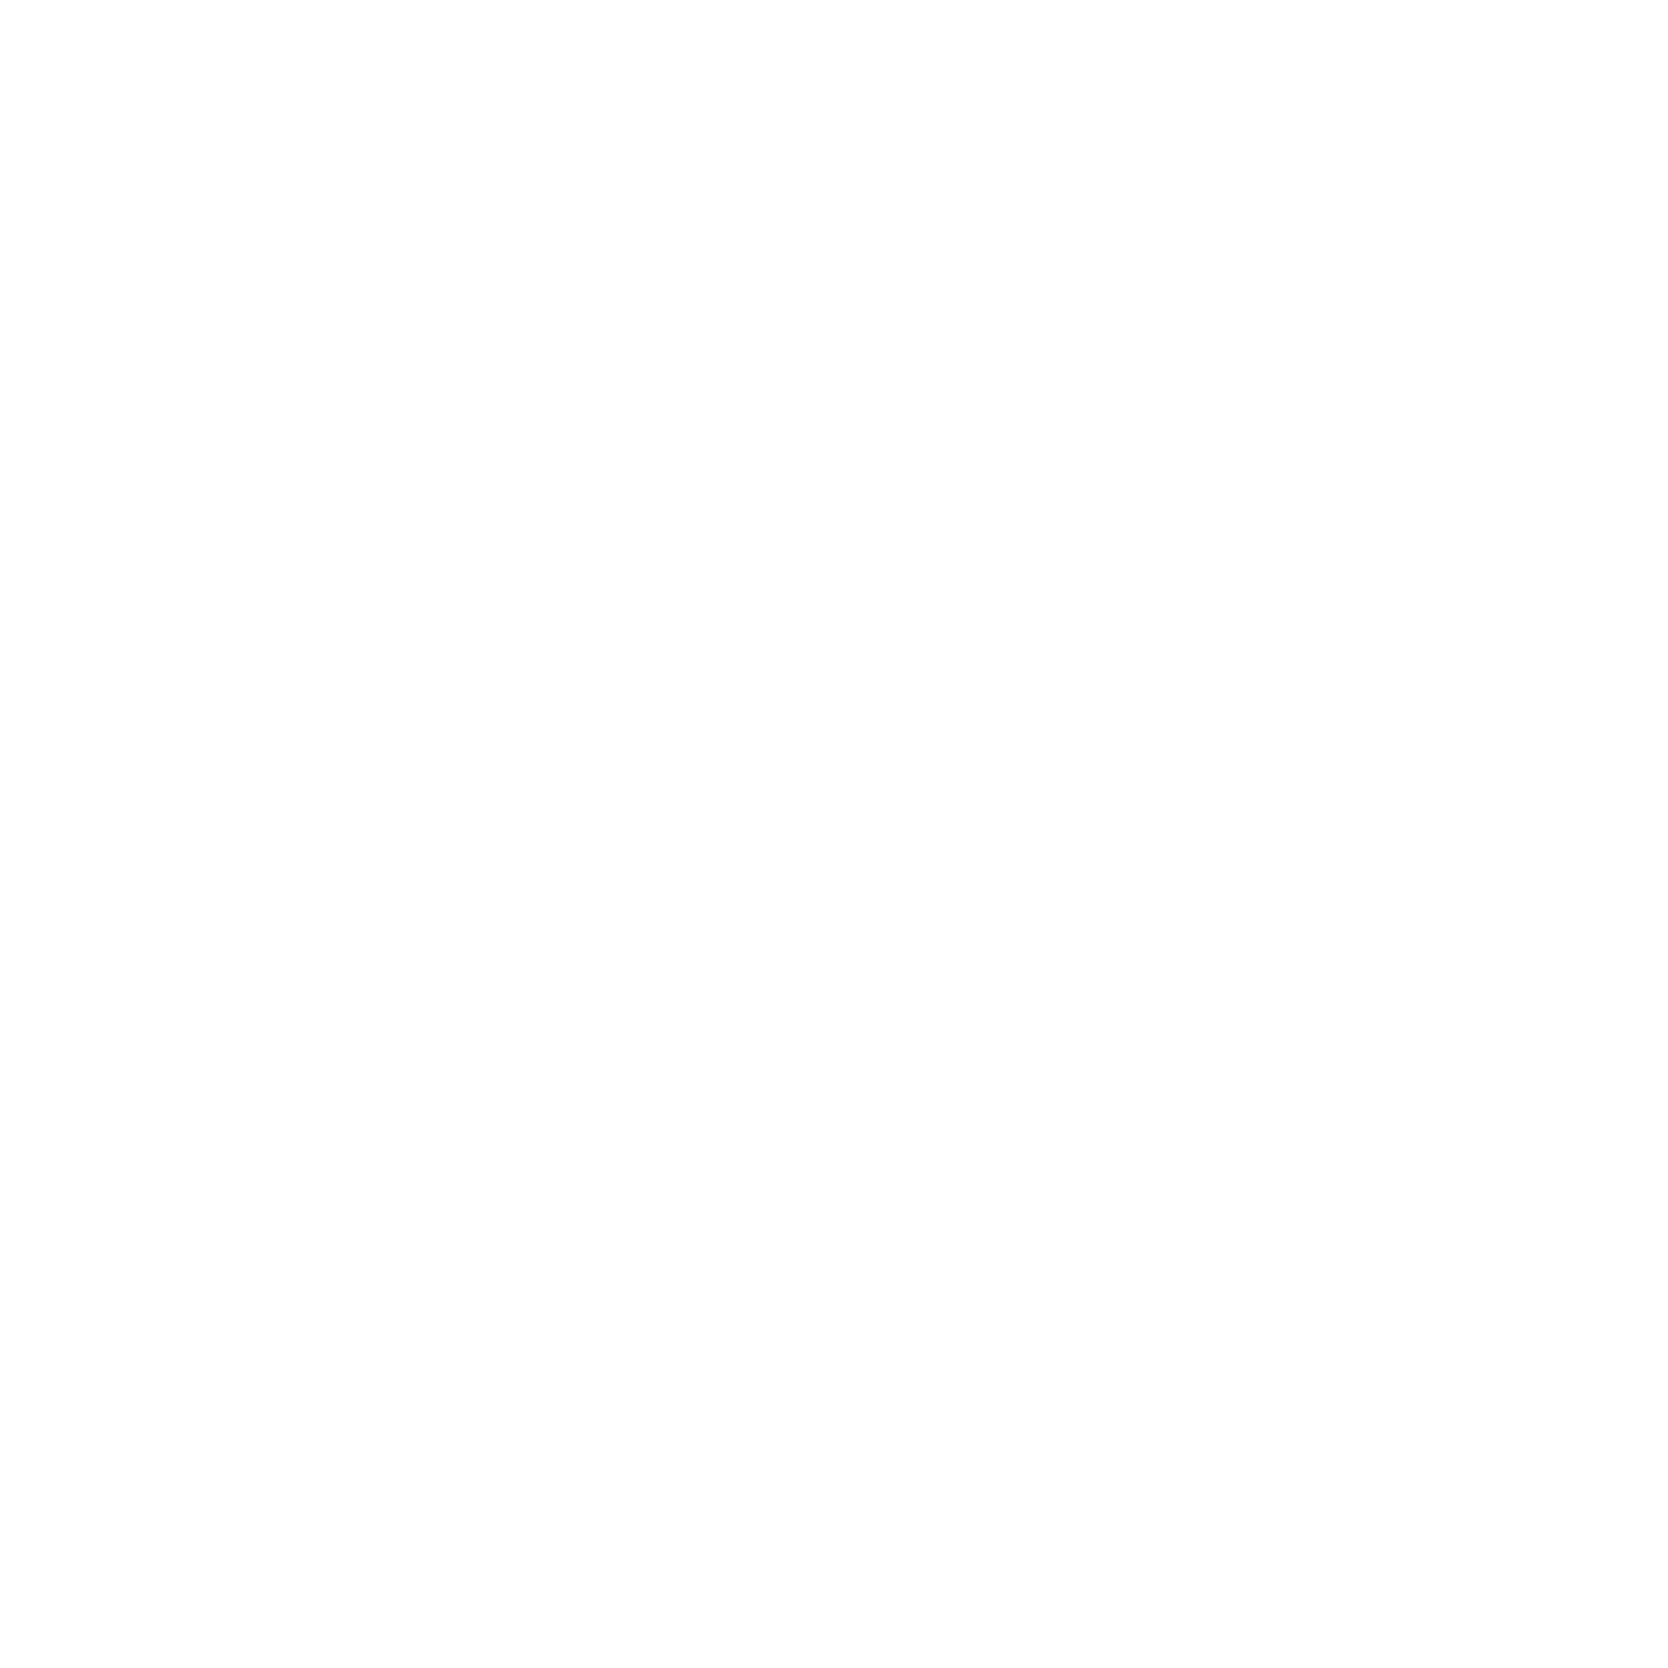 Request a ballot